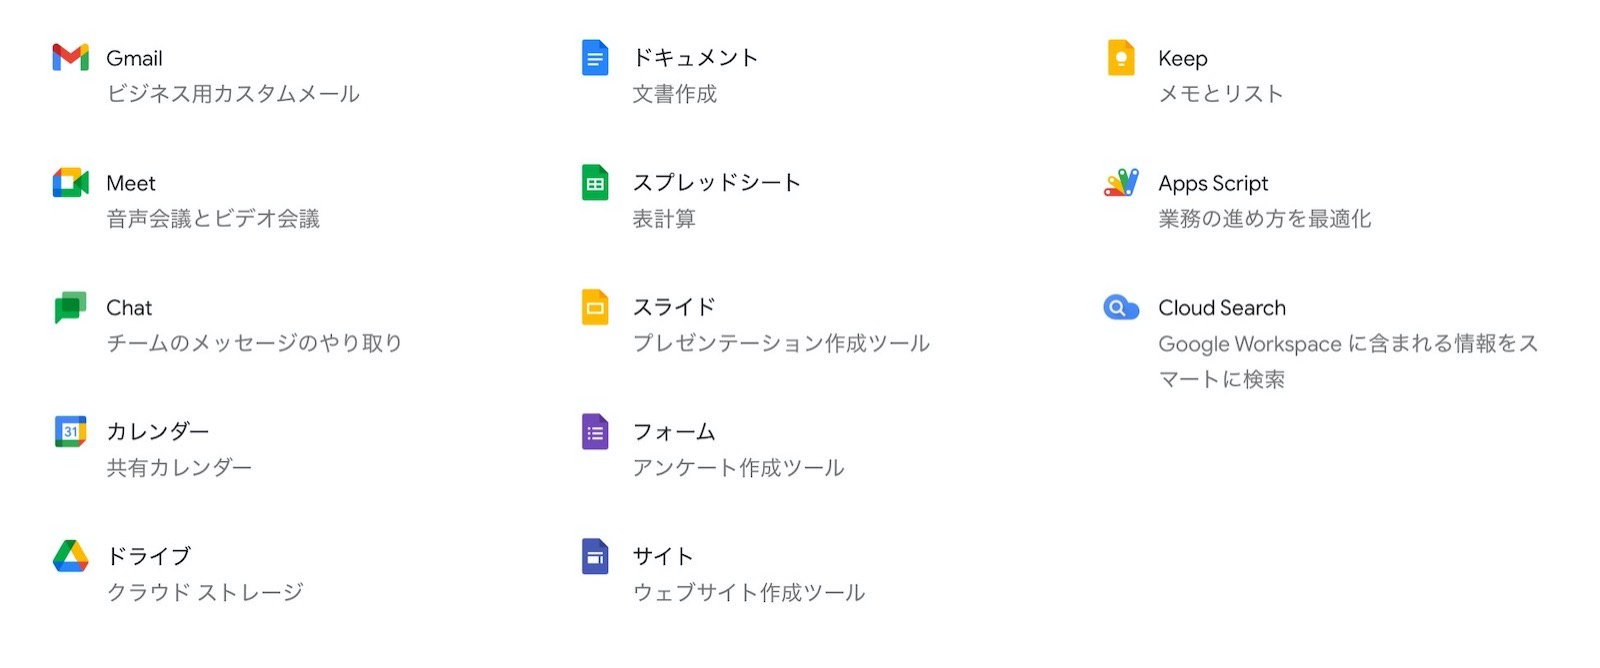 Google Workspace included applications